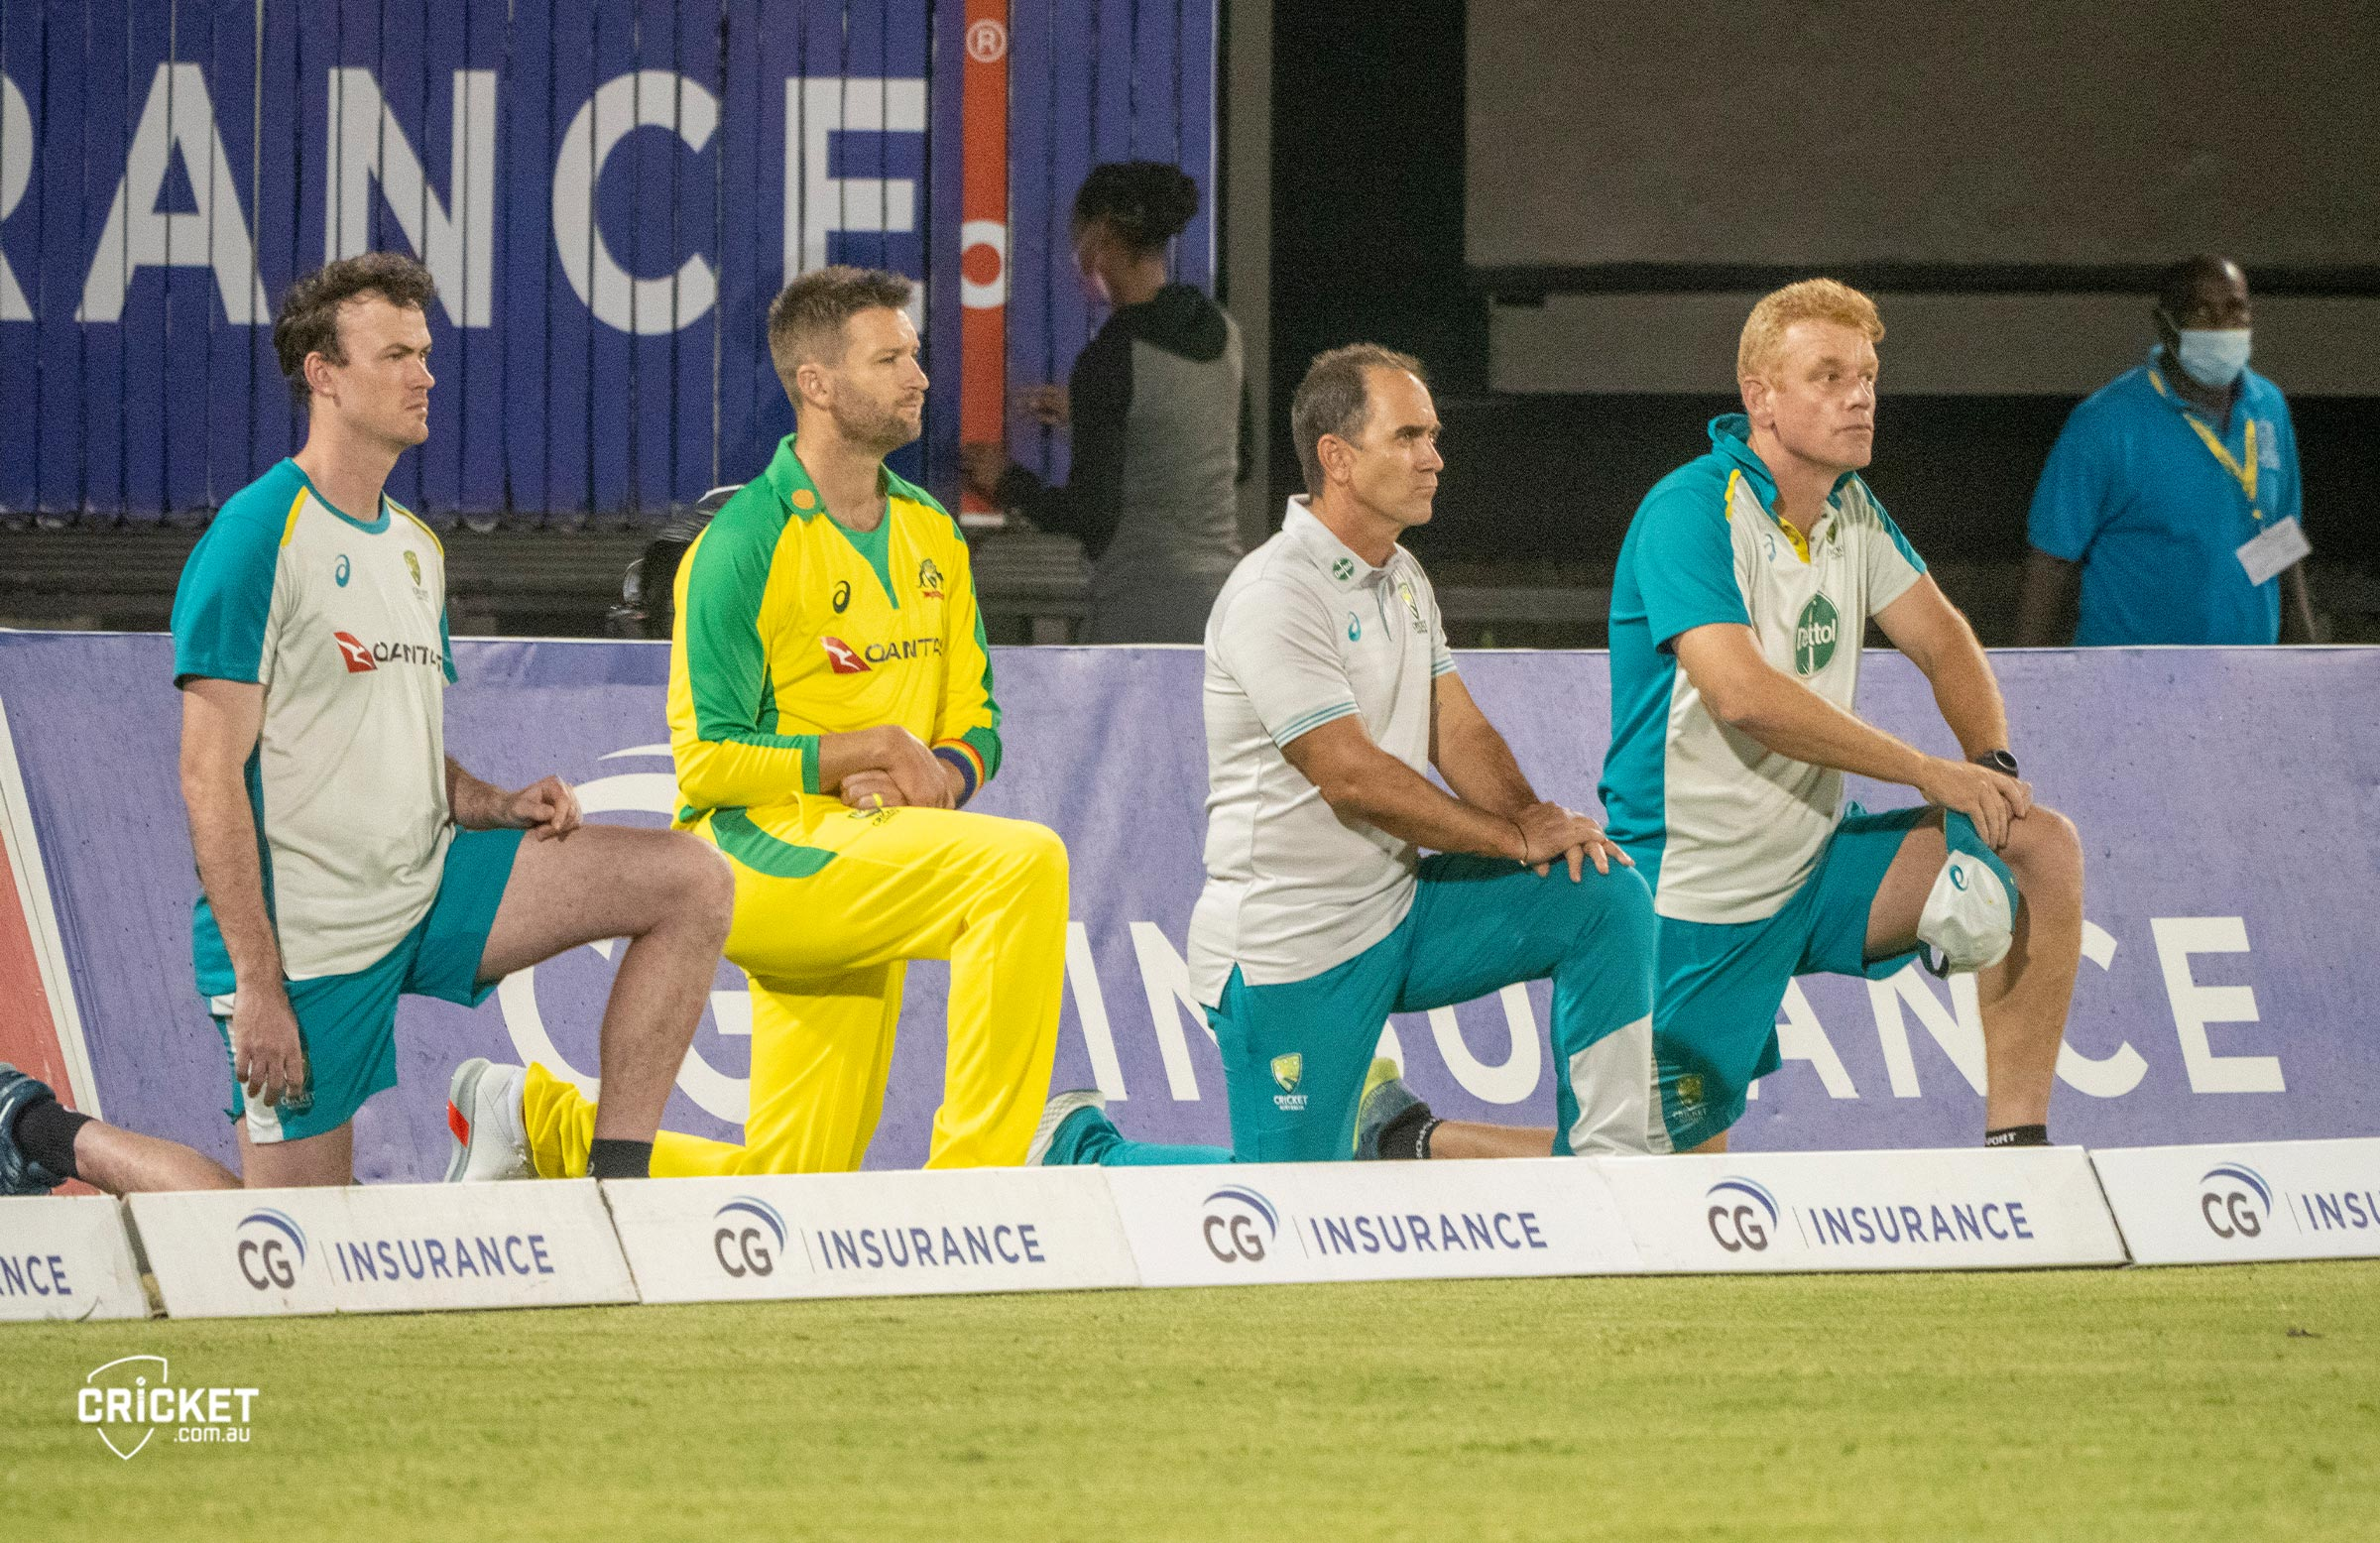 The entire Australian touring party took a knee in St Lucia // cricket.com.au